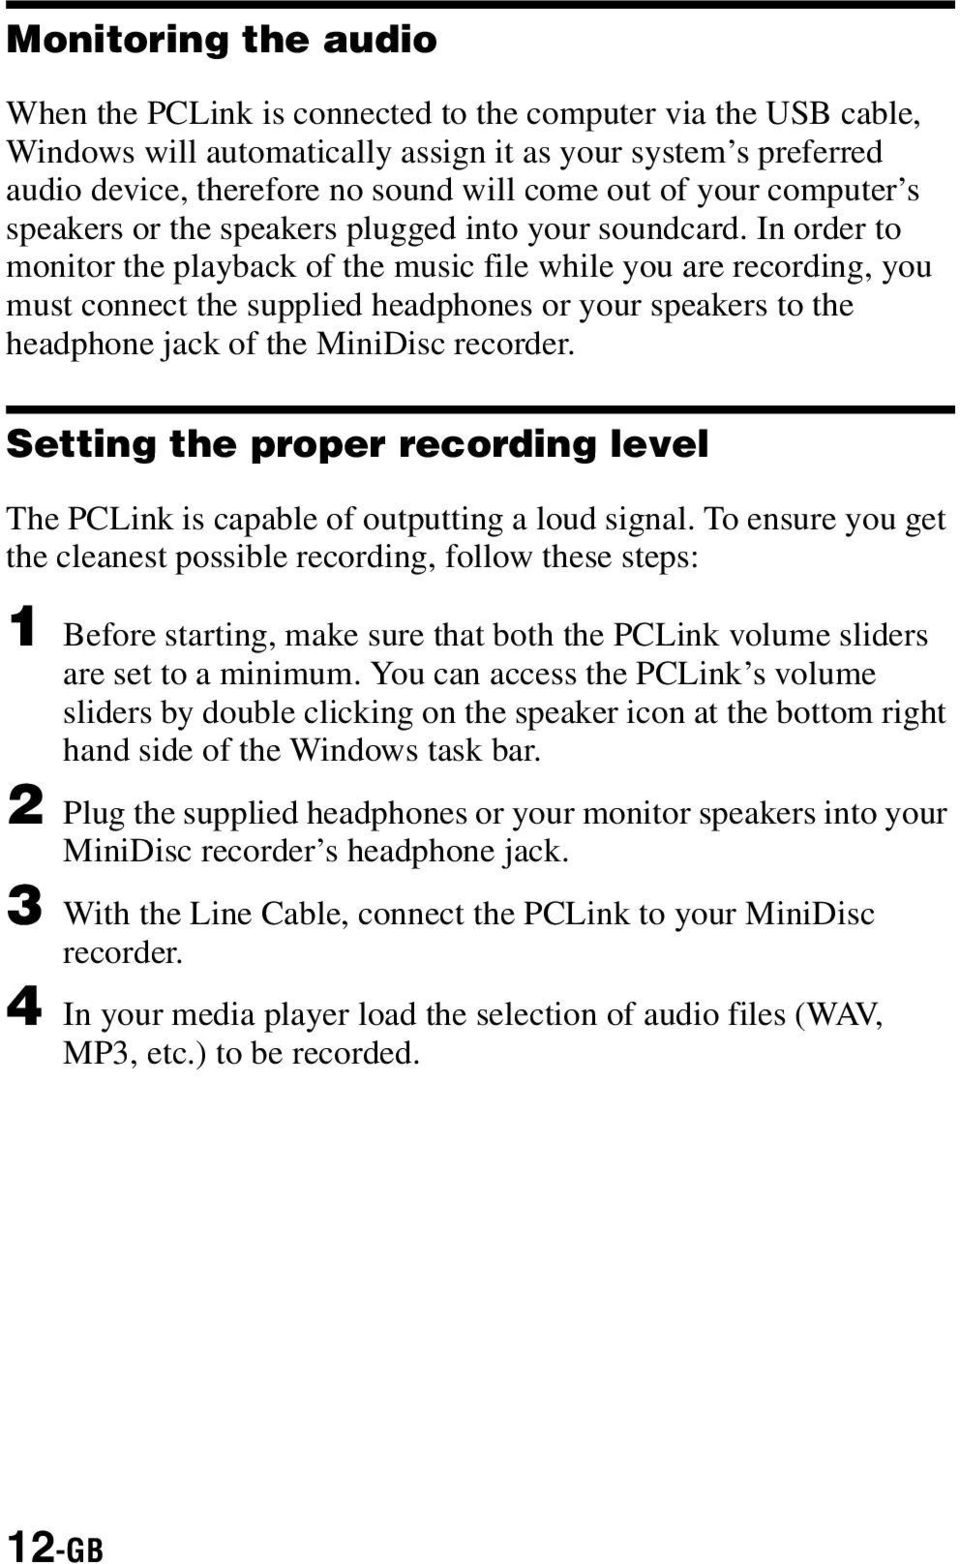 In order to monitor the playback of the music file while you are recording, you must connect the supplied headphones or your speakers to the headphone jack of the MiniDisc recorder.